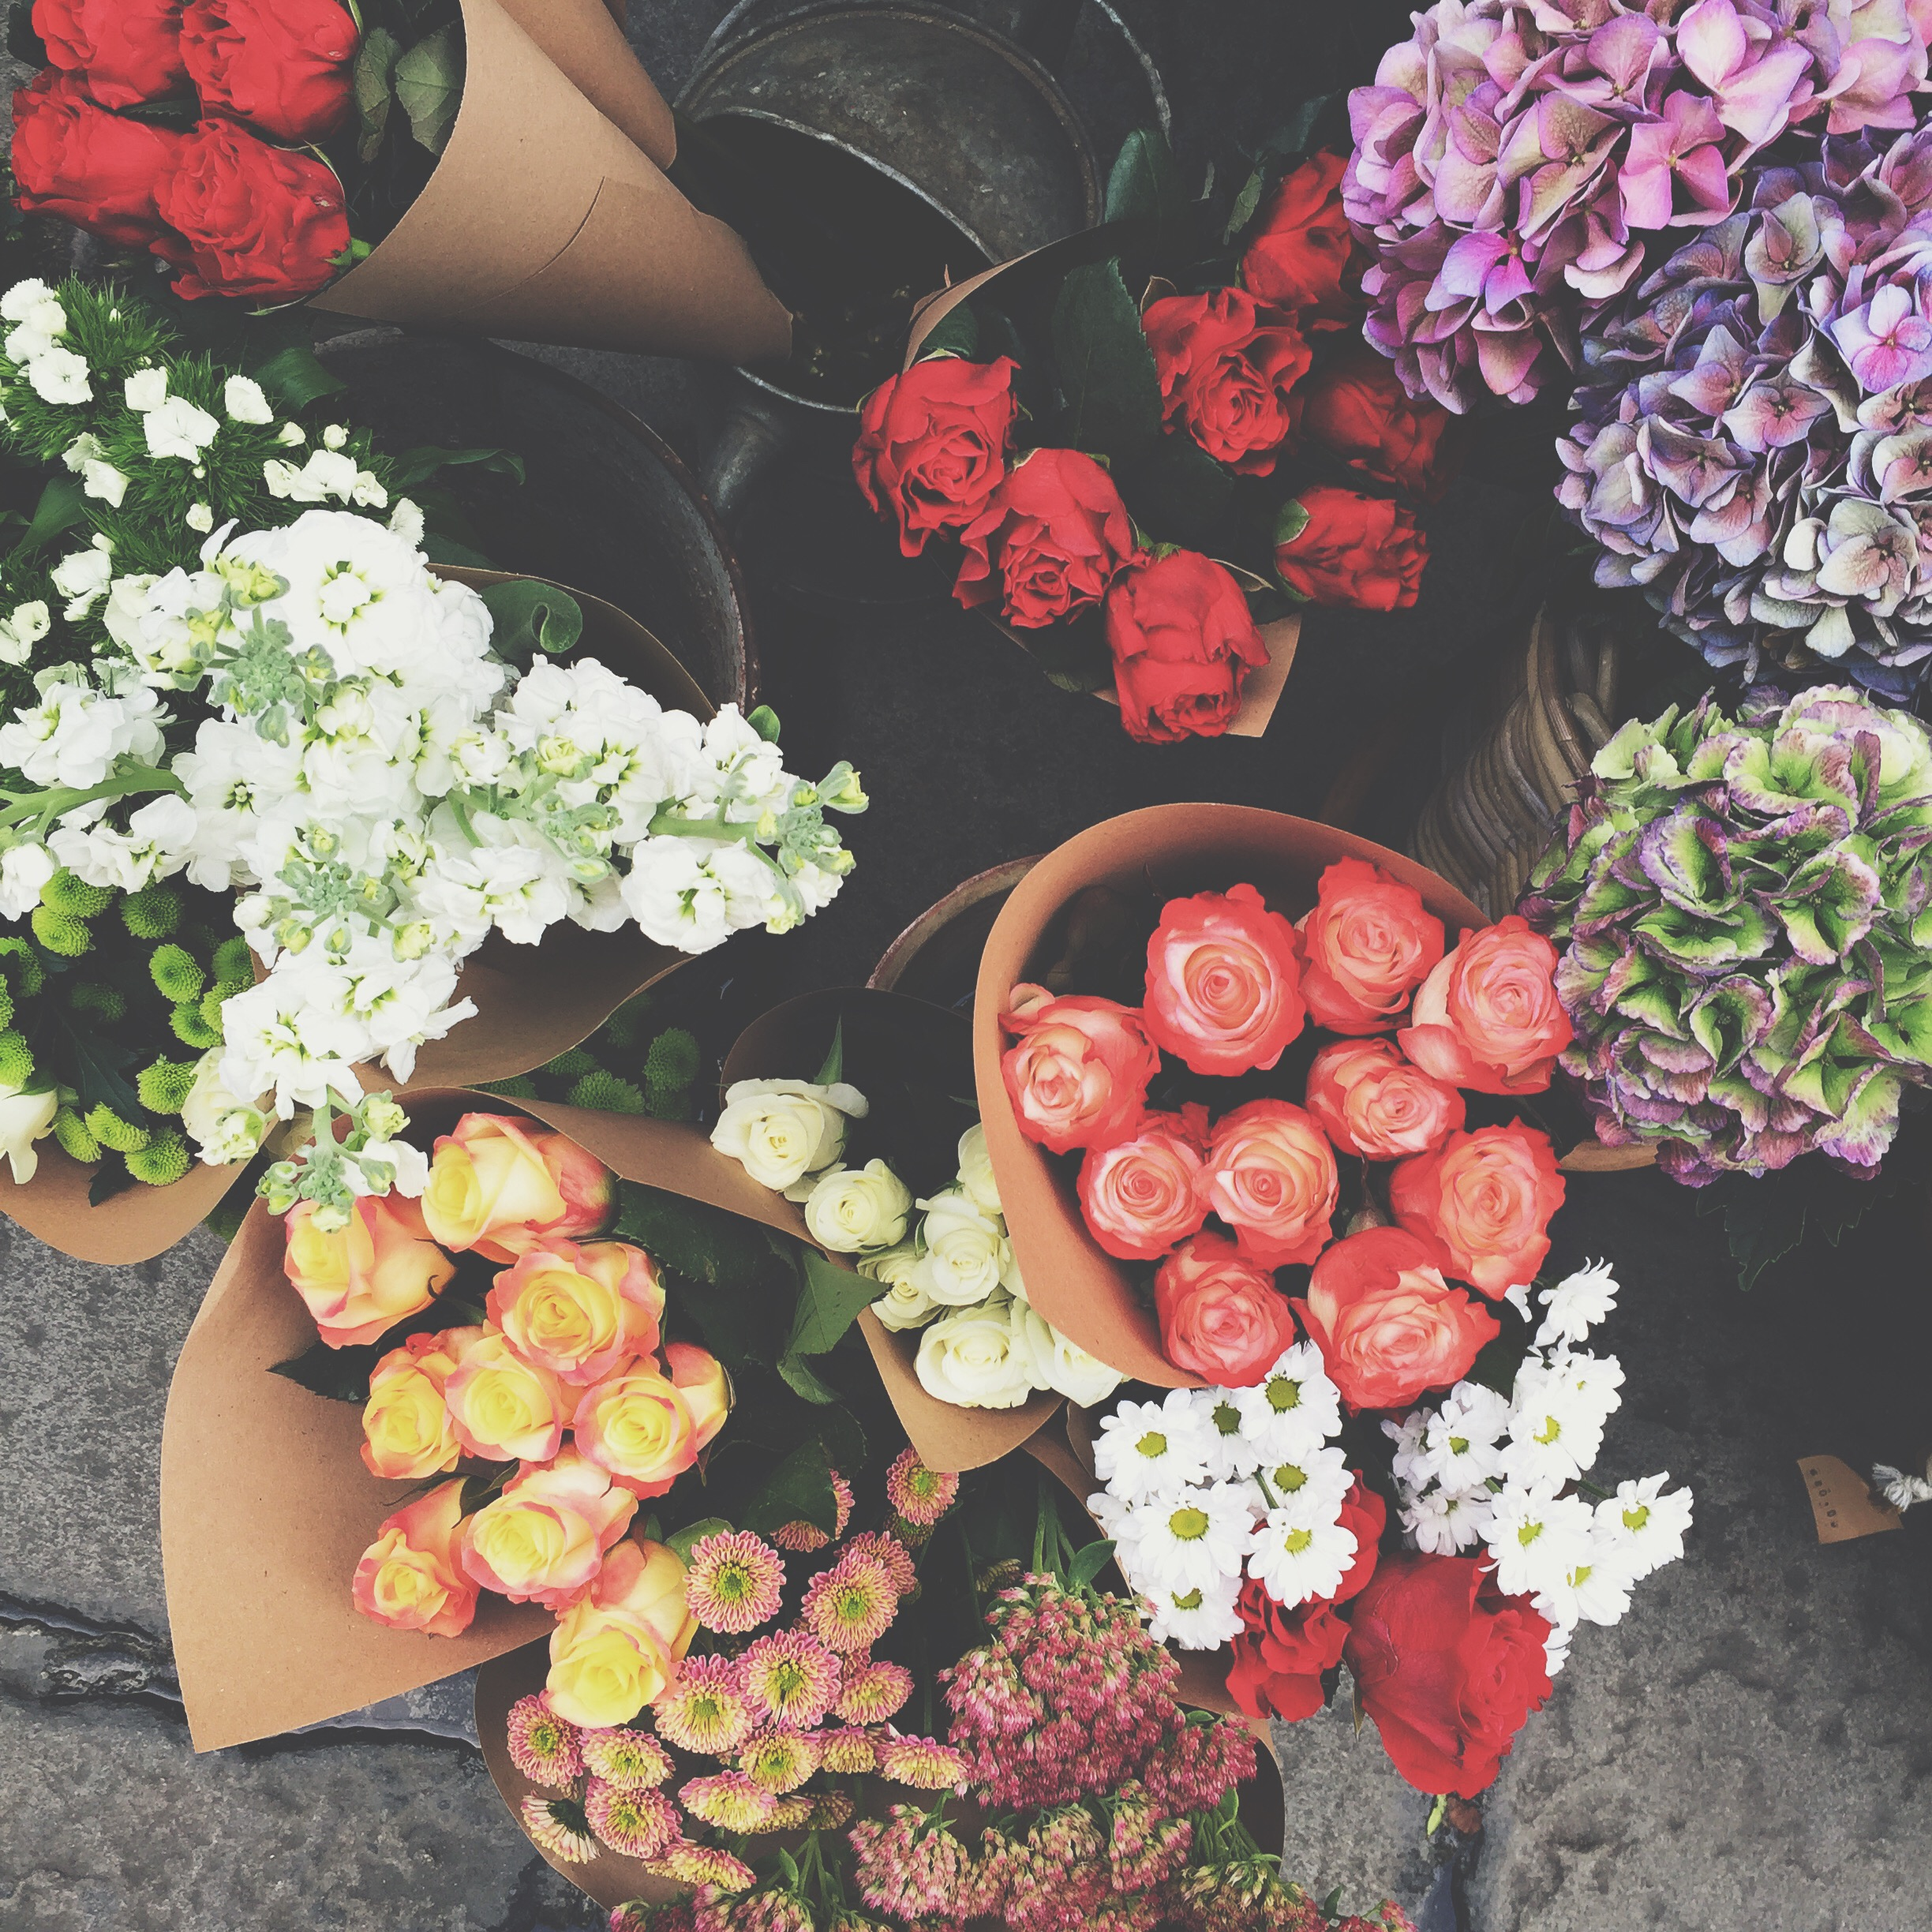 Flowers in Italy.